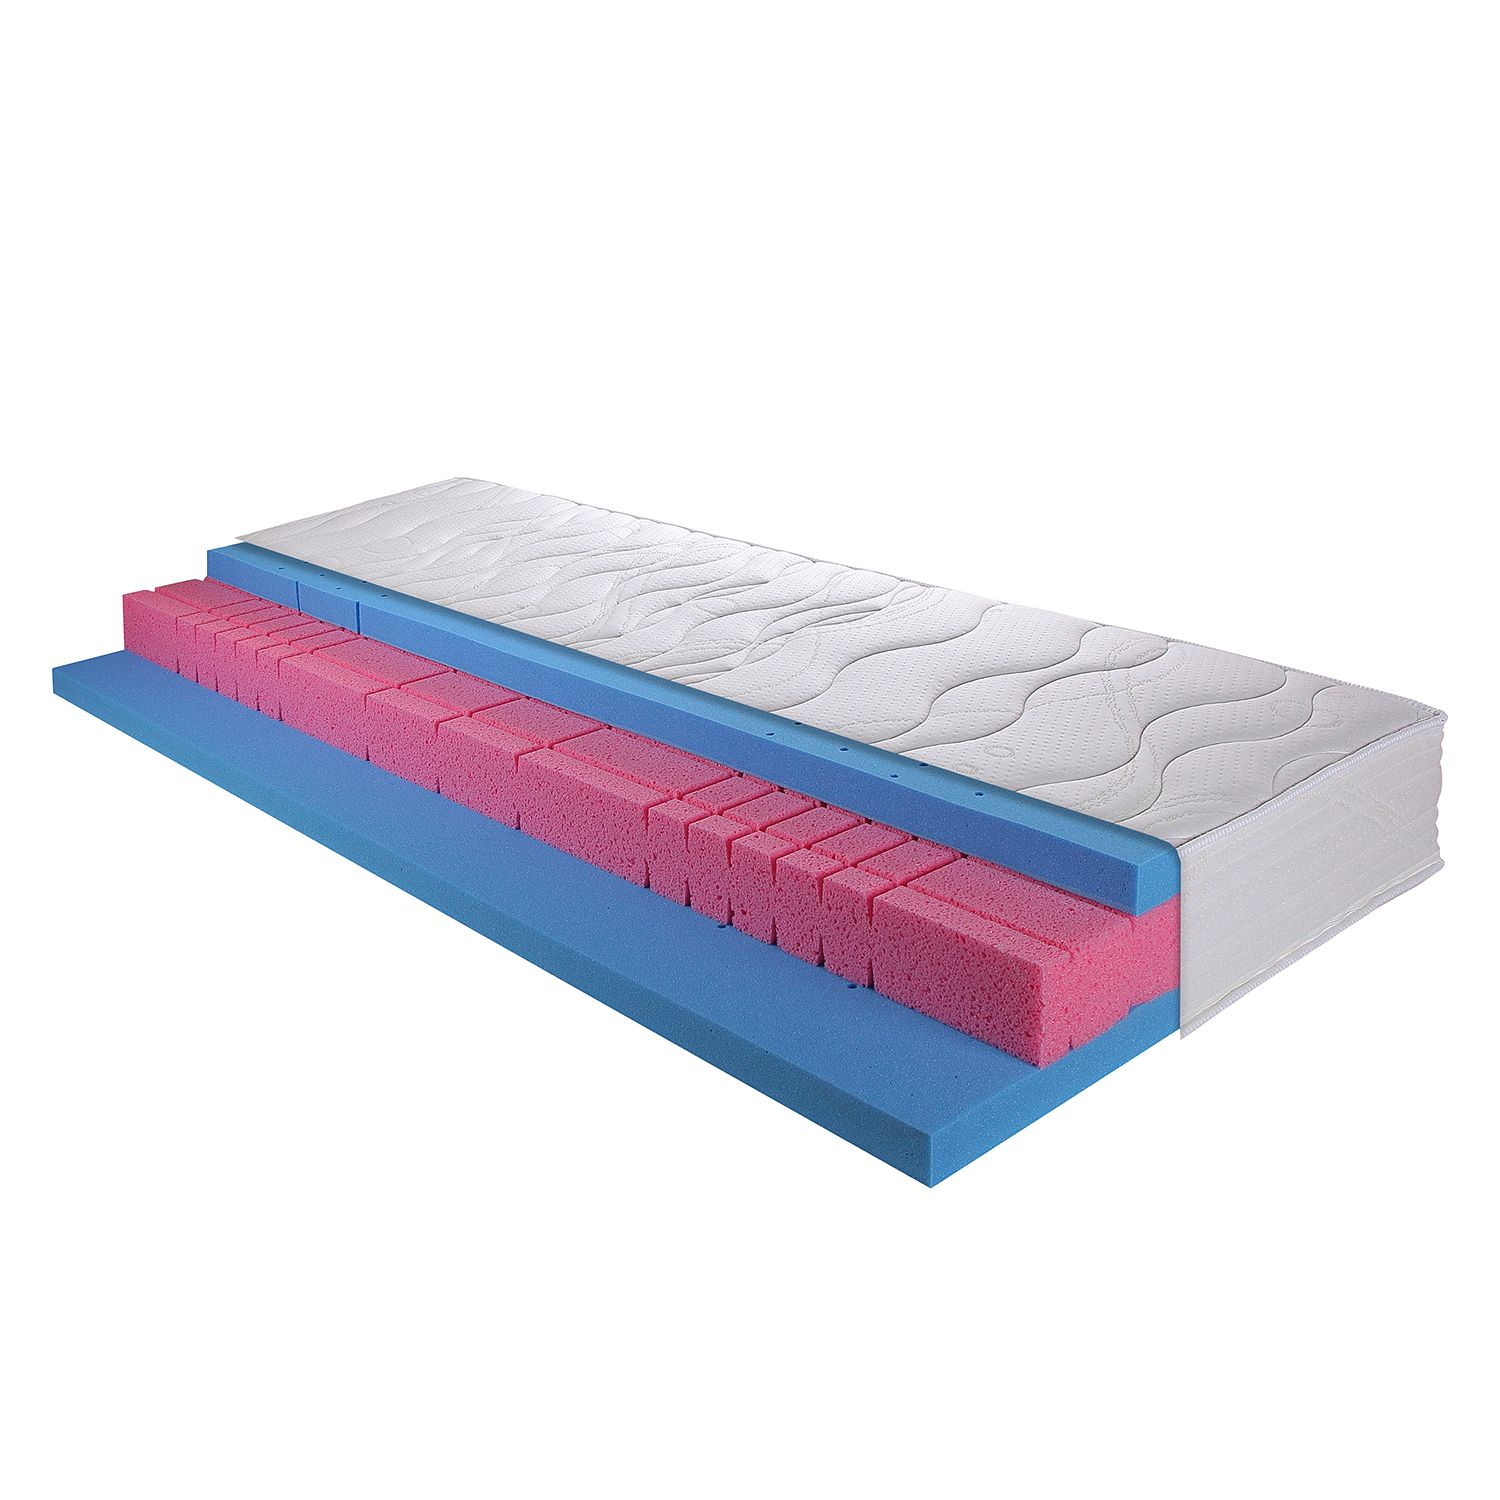 Matelas en mousse froide Ortho Air Gi - 180 x 200cm, Breckle